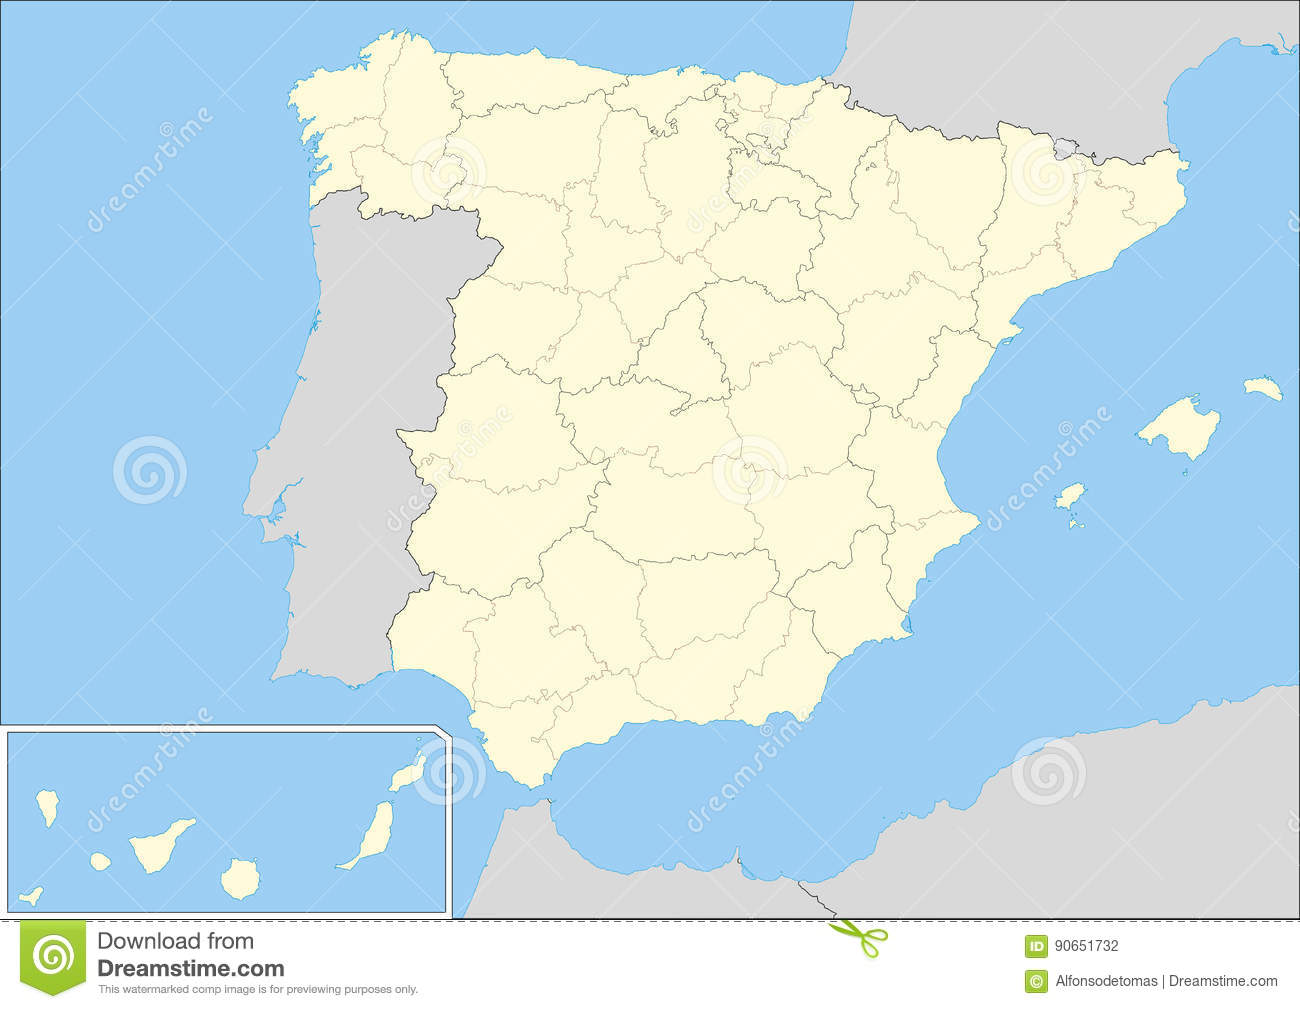 Spain Map Of Provinces.Provinces Of Spain Stock Illustration Illustration Of Baleares